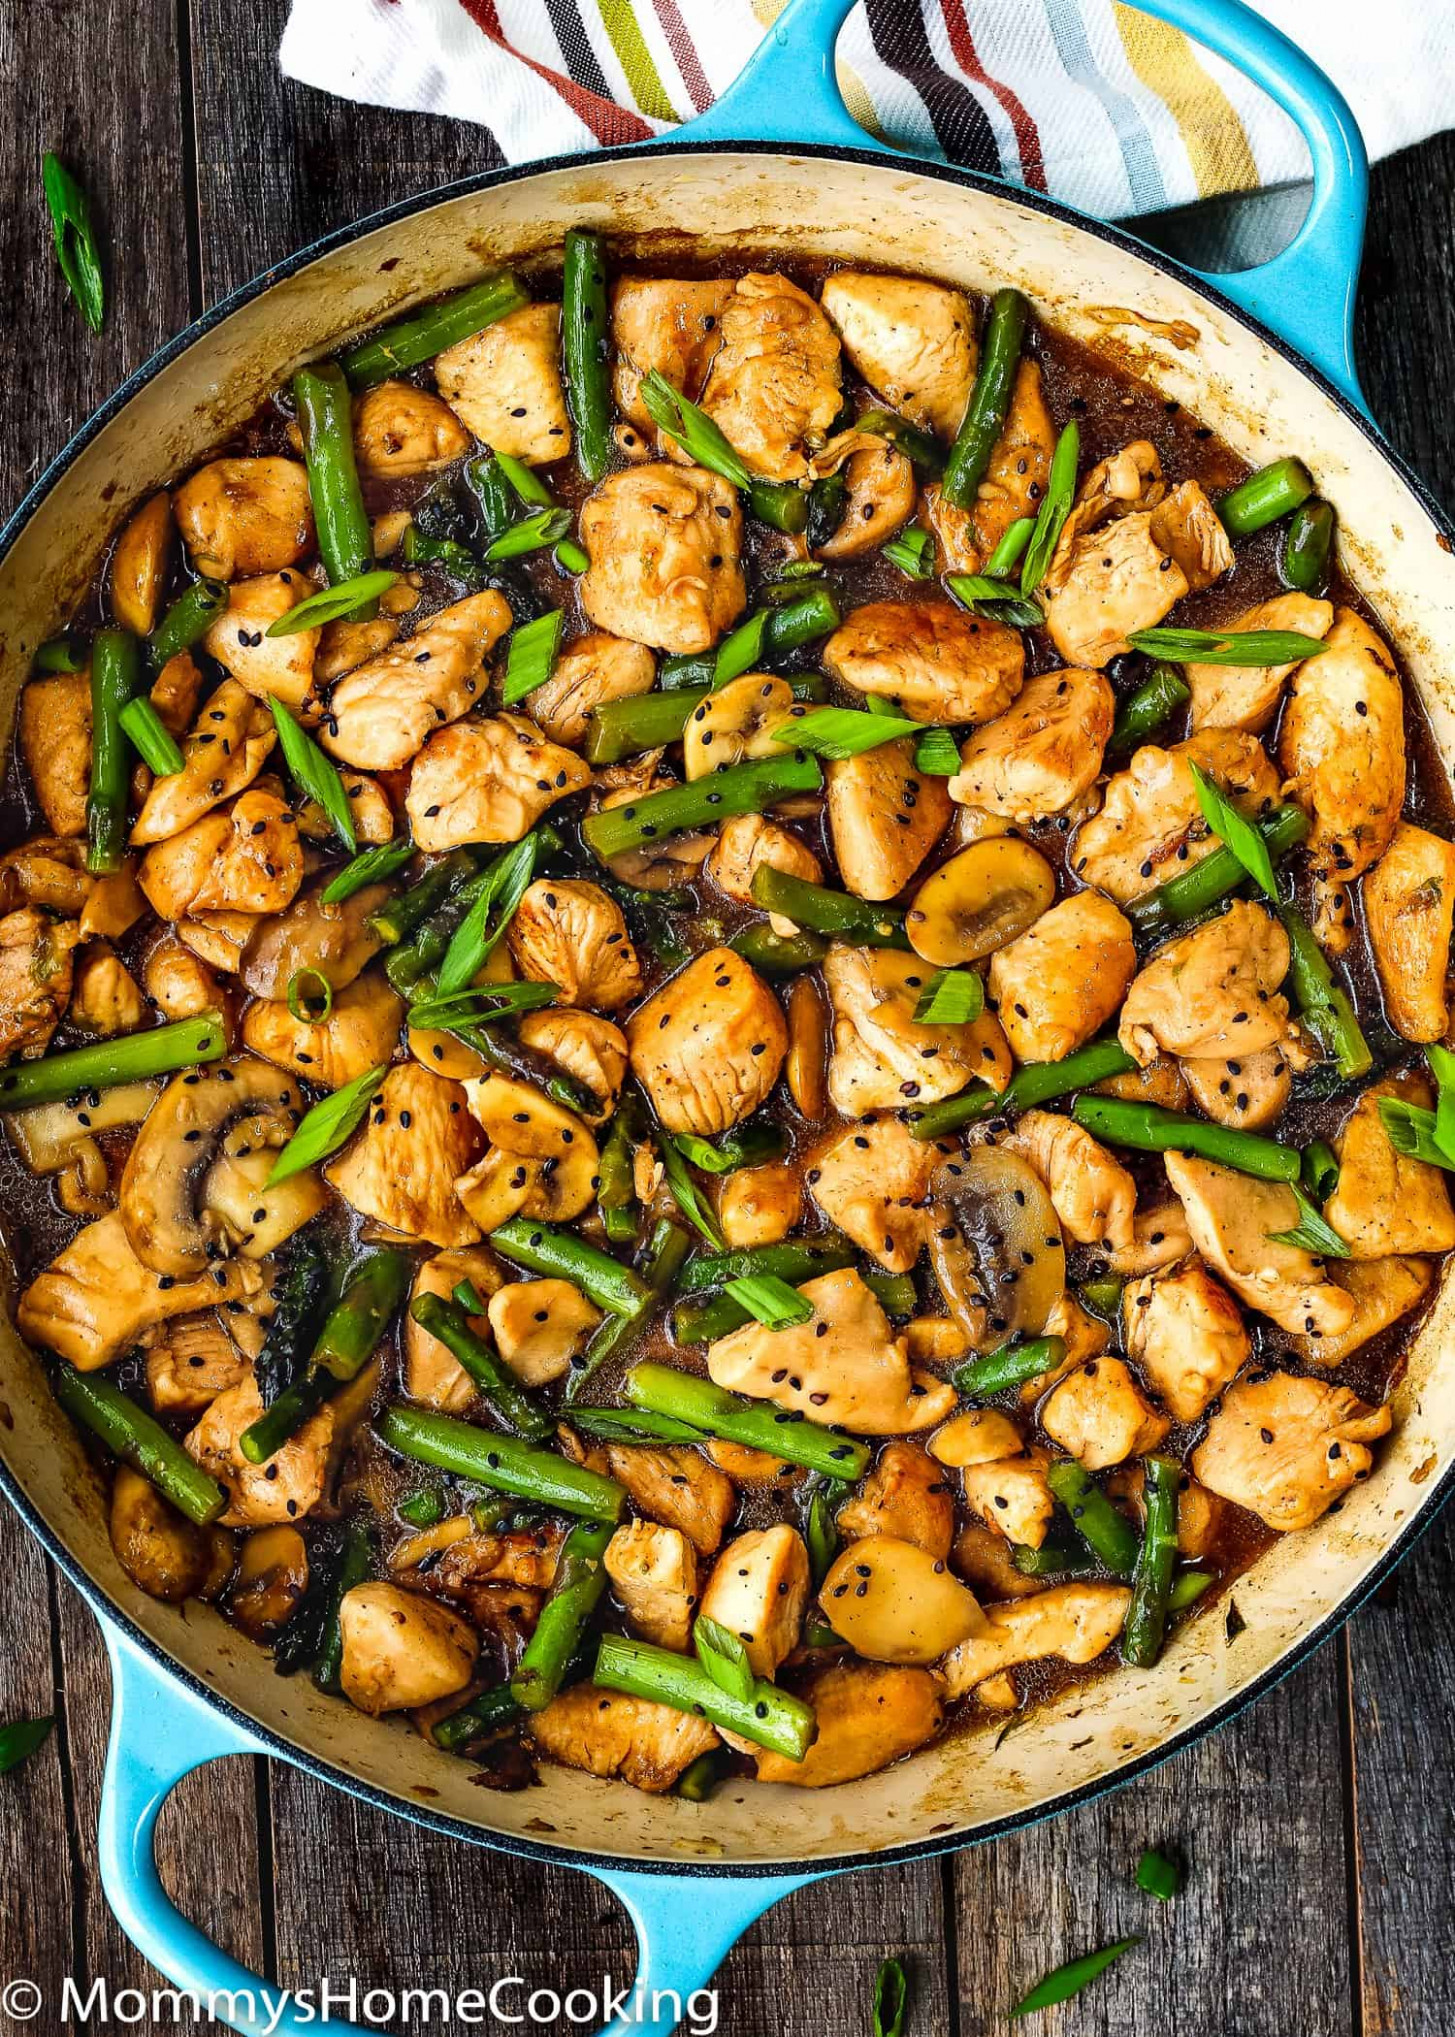 Easy Healthy Chicken and Asparagus Skillet - healthy recipes easy